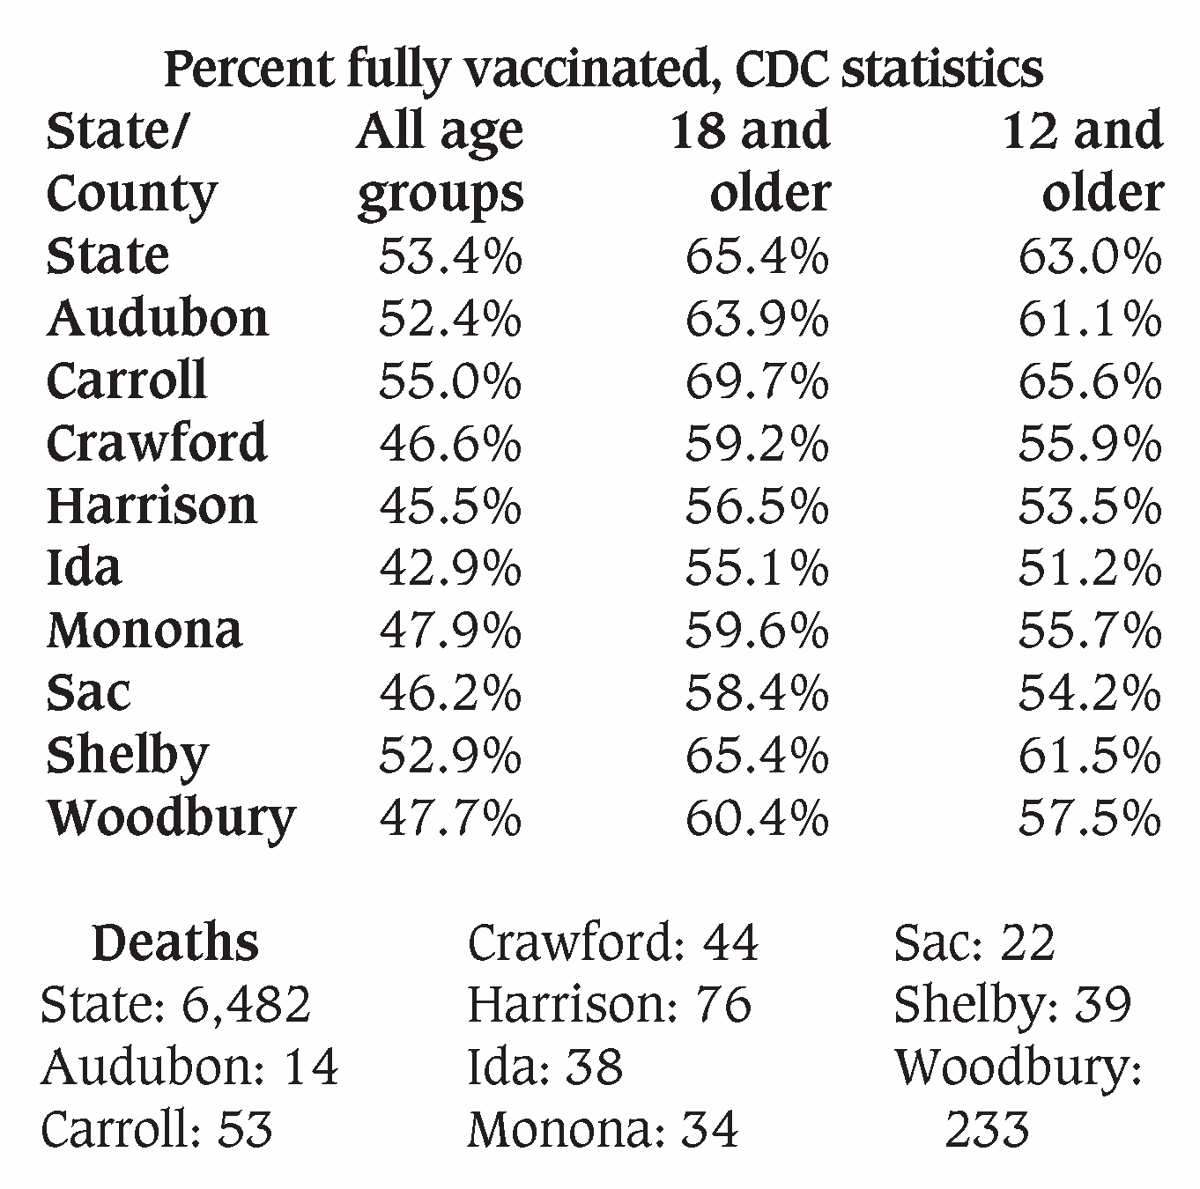 Percent fully vaccinated, deaths as of 9-21-2021